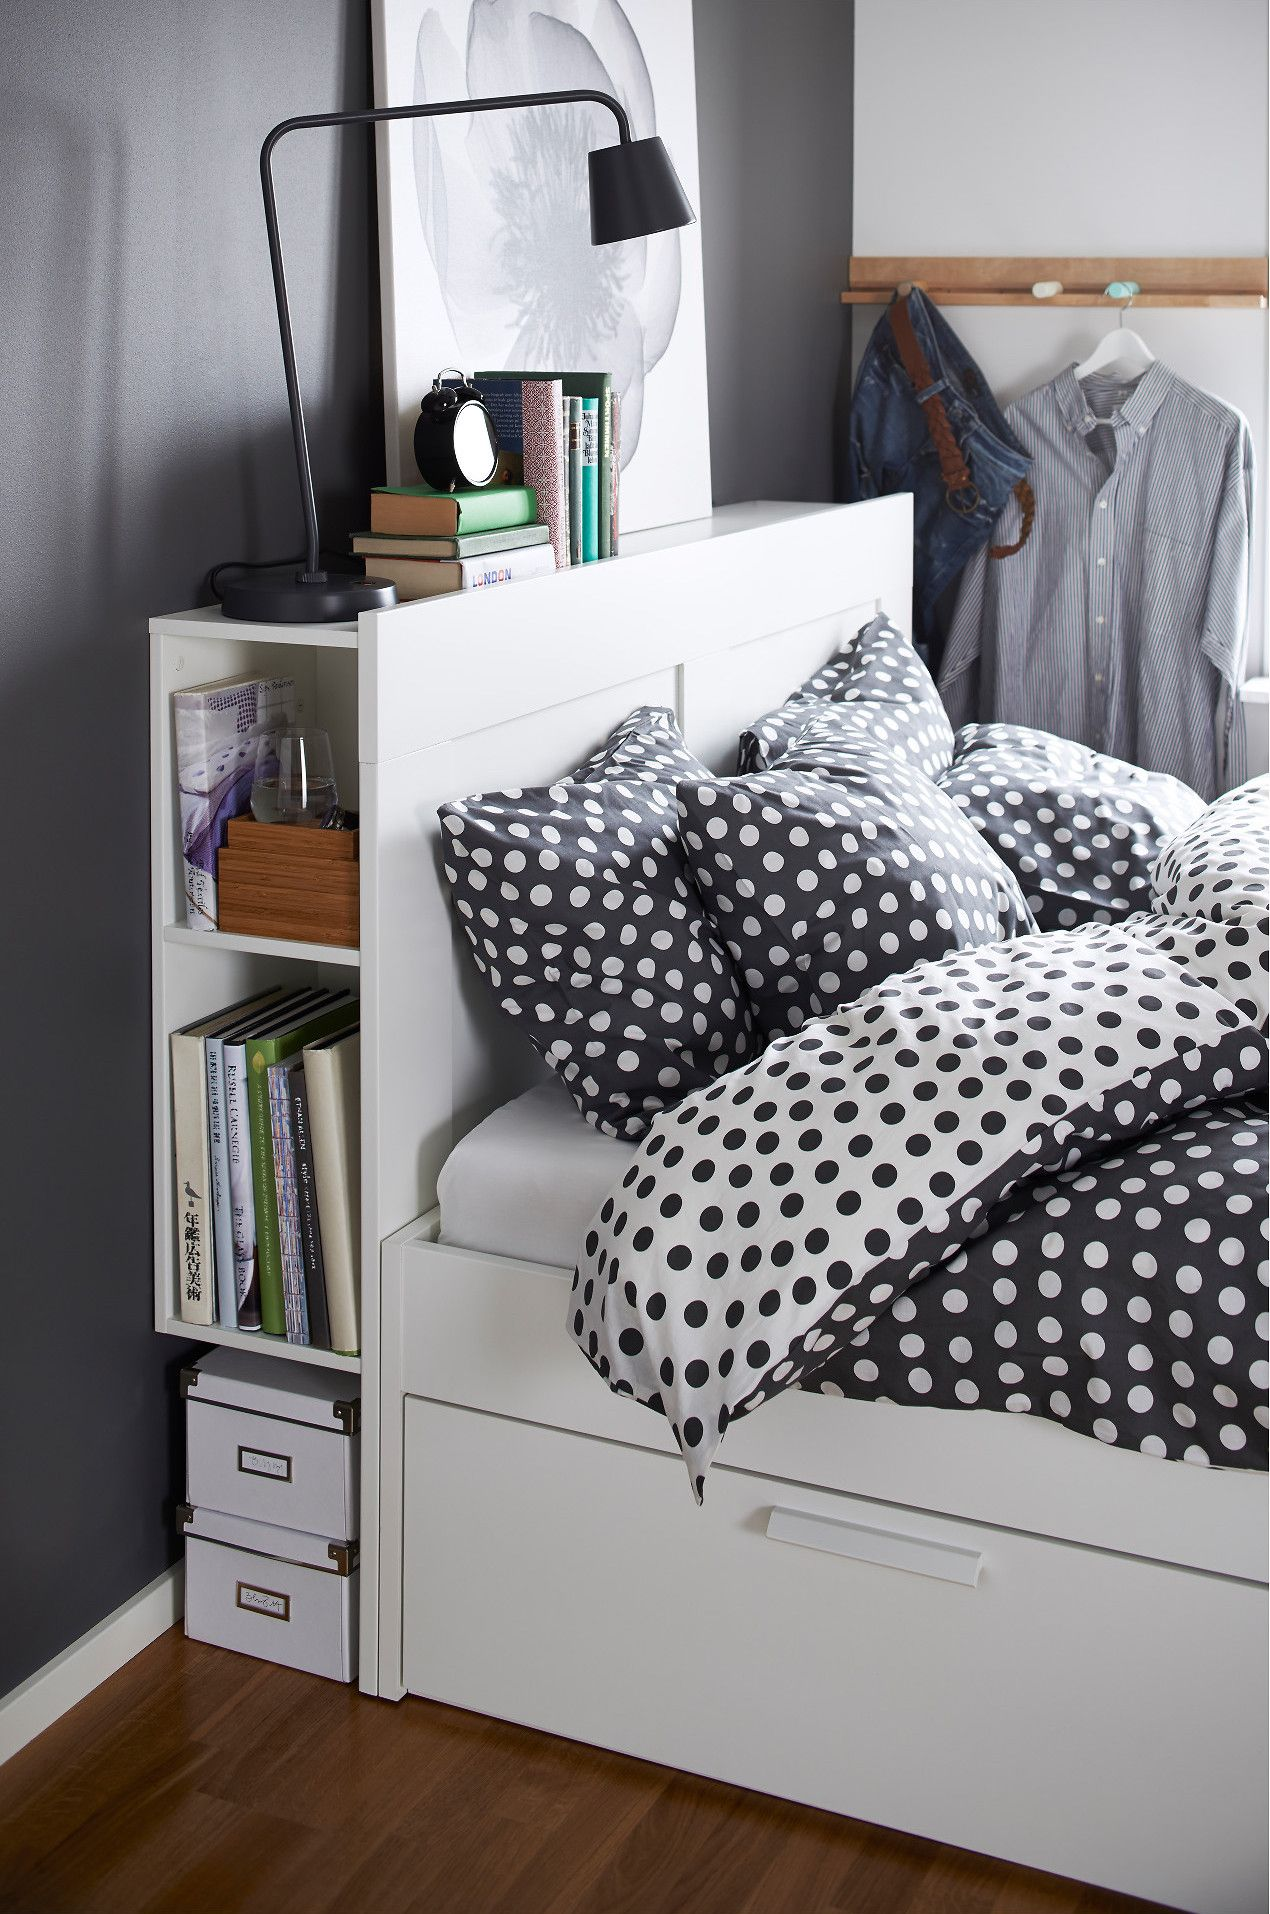 Ikea Schlafzimmer Kleiner Raum Creative Bookshelf Ideas You Ll Want To Try At Home Bedroom